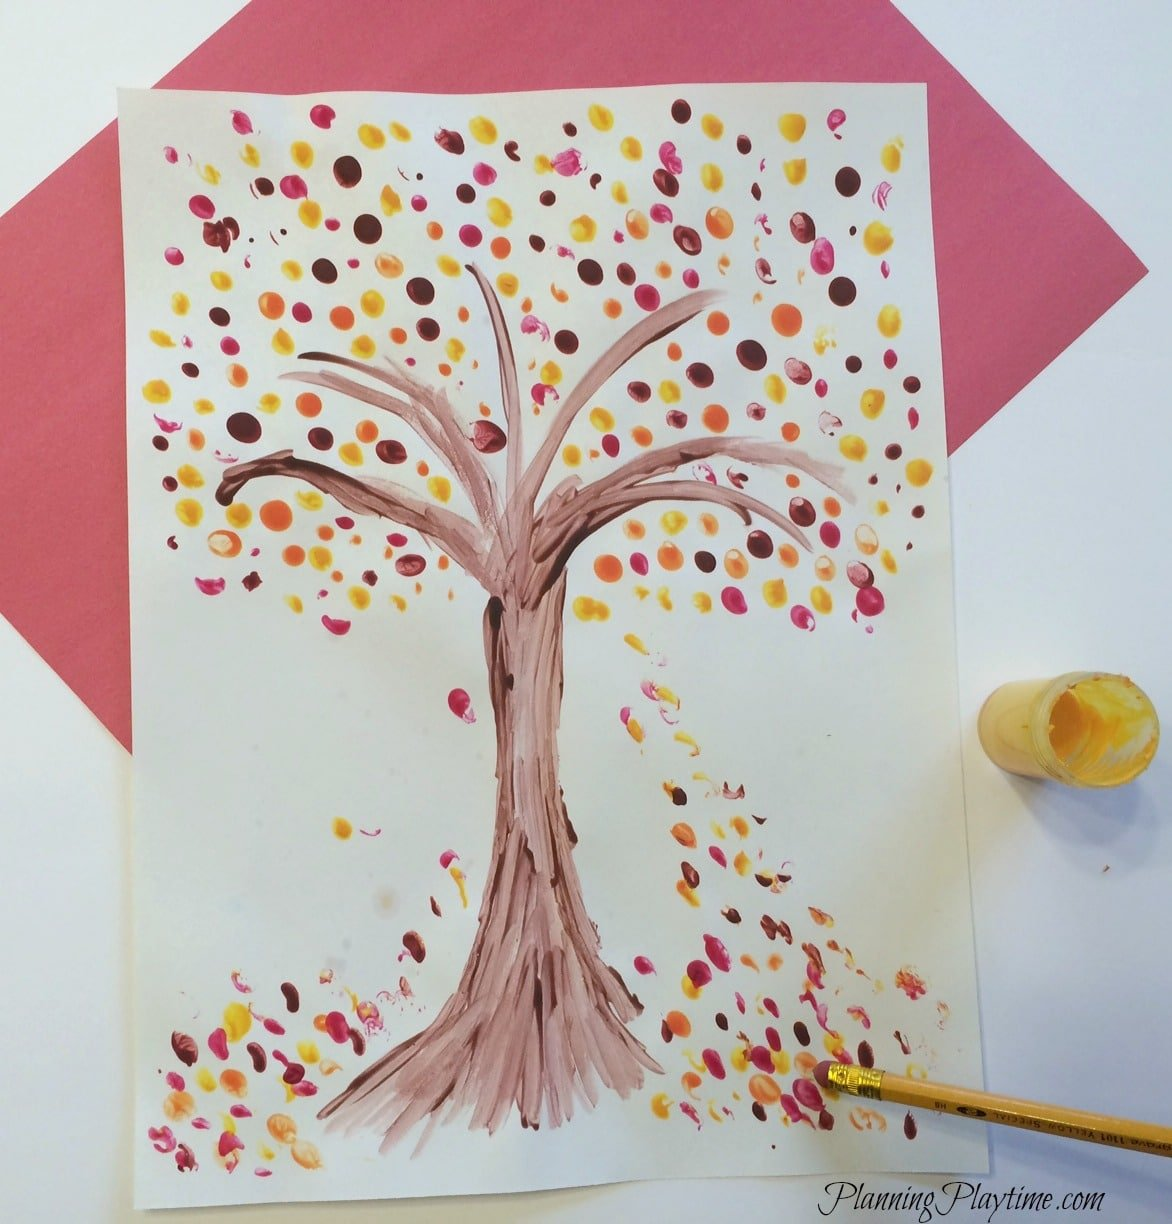 Fall Tree art project for kids using a pencil eraser to stamp the leaves.